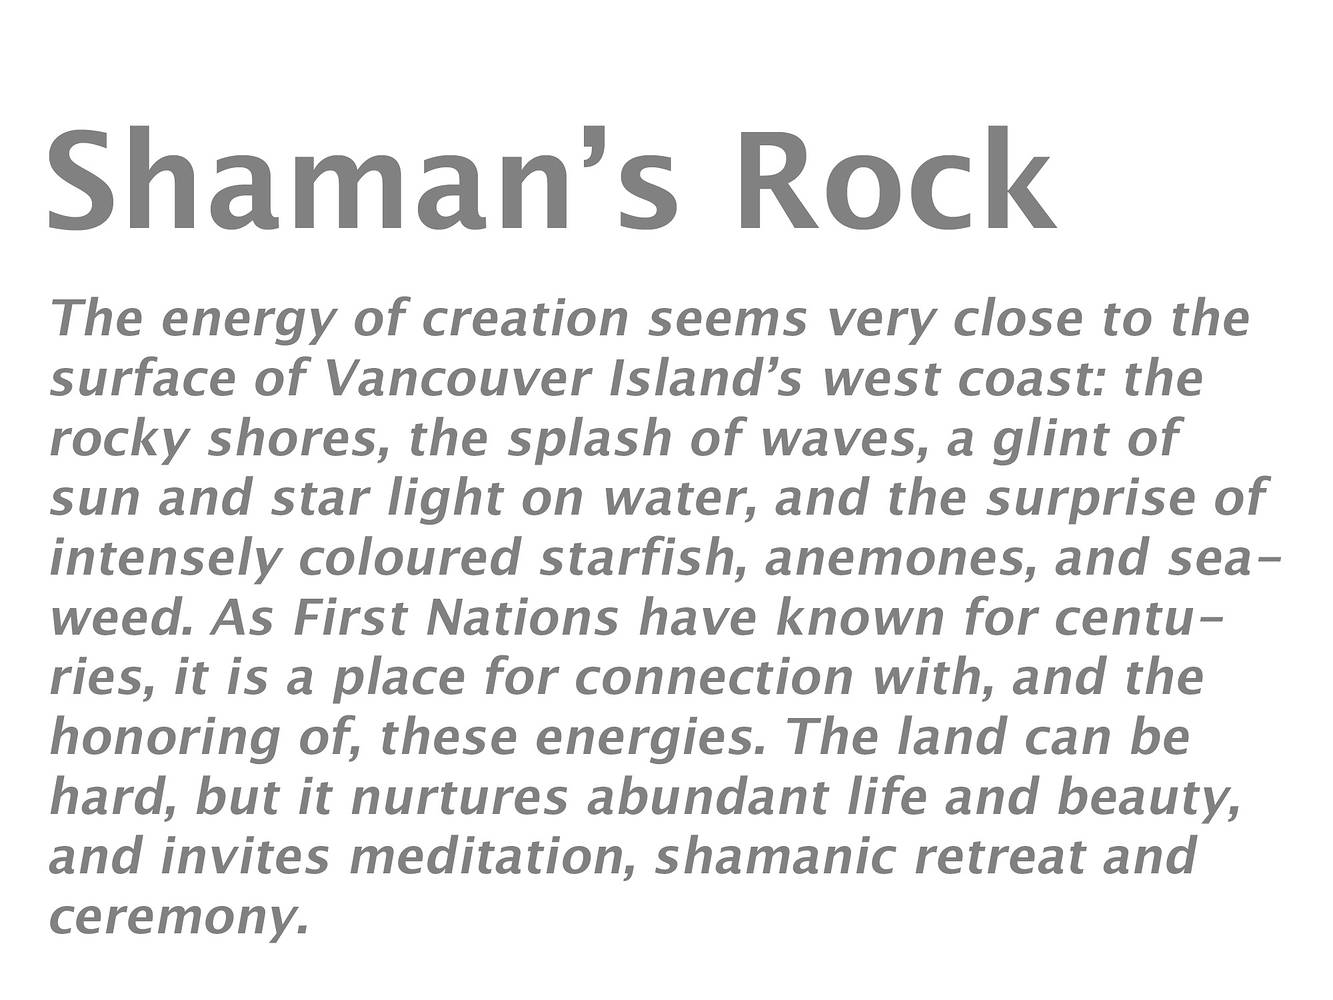 Shaman's Rock by Lori Sokoluk